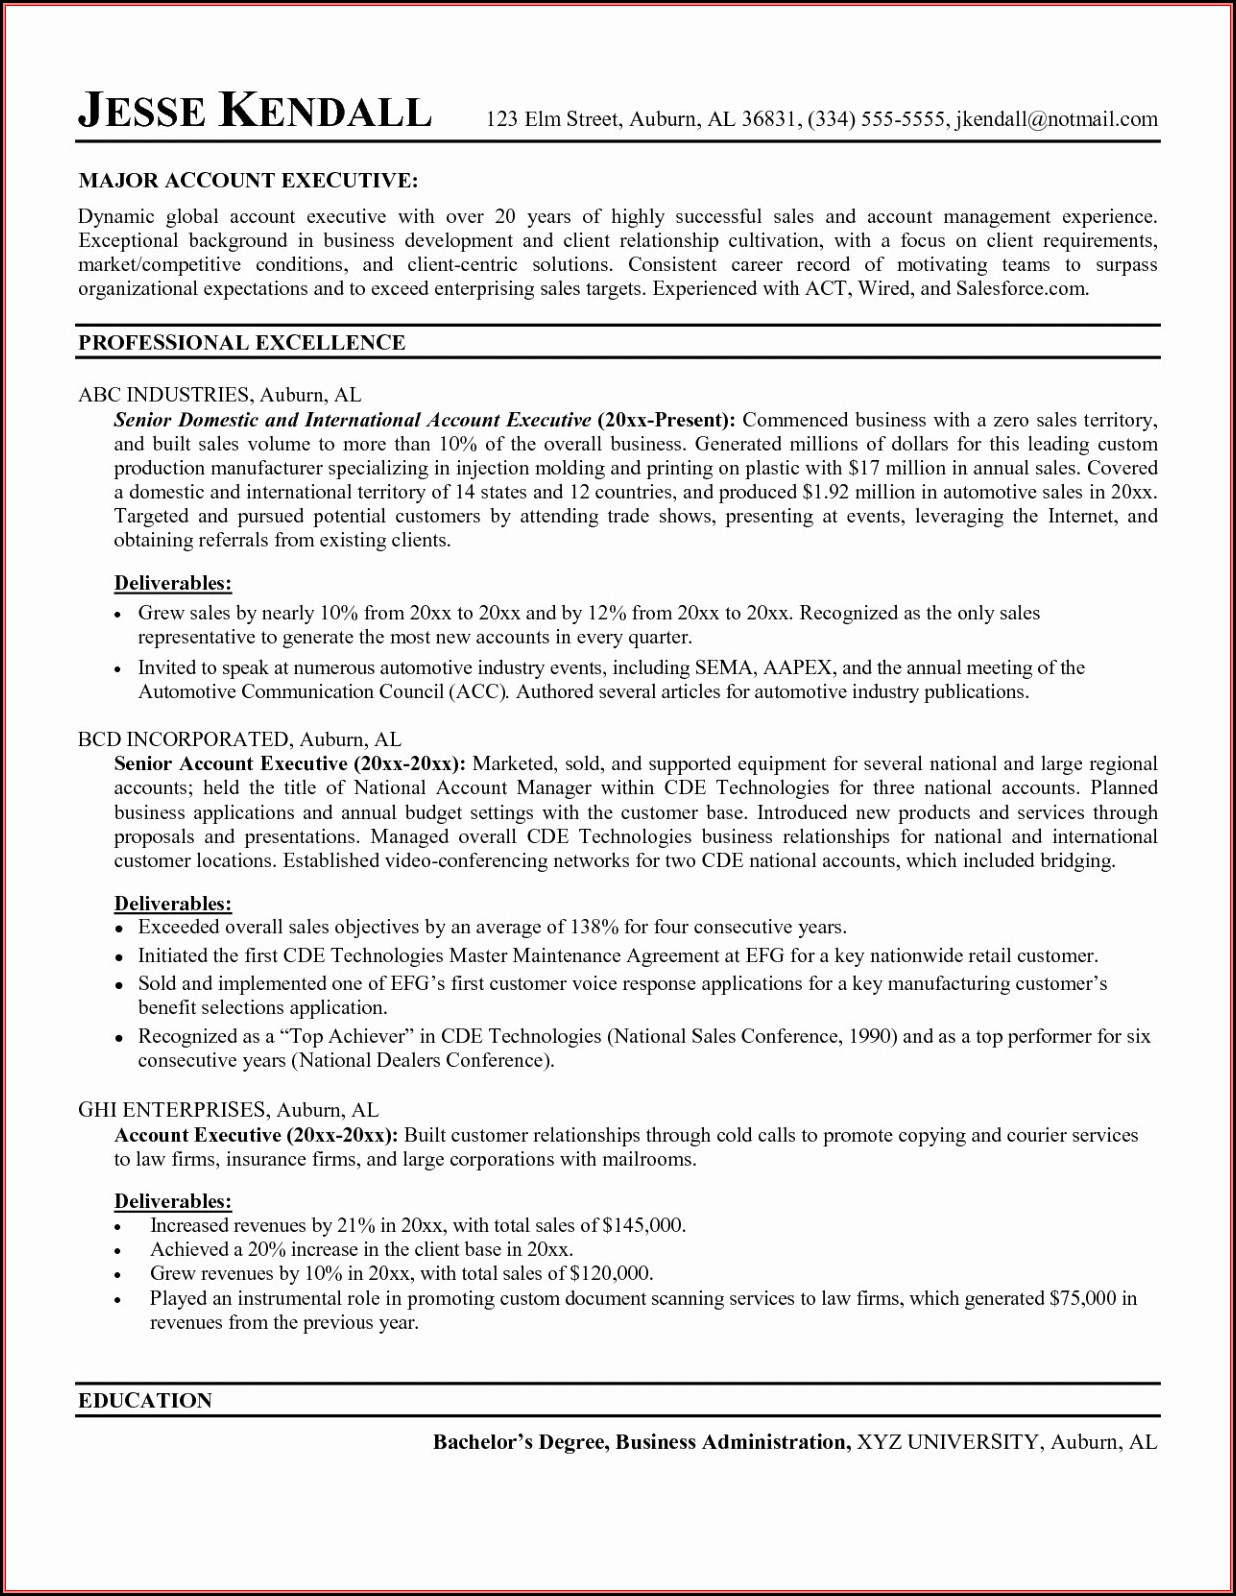 Resumes For Sales Executives